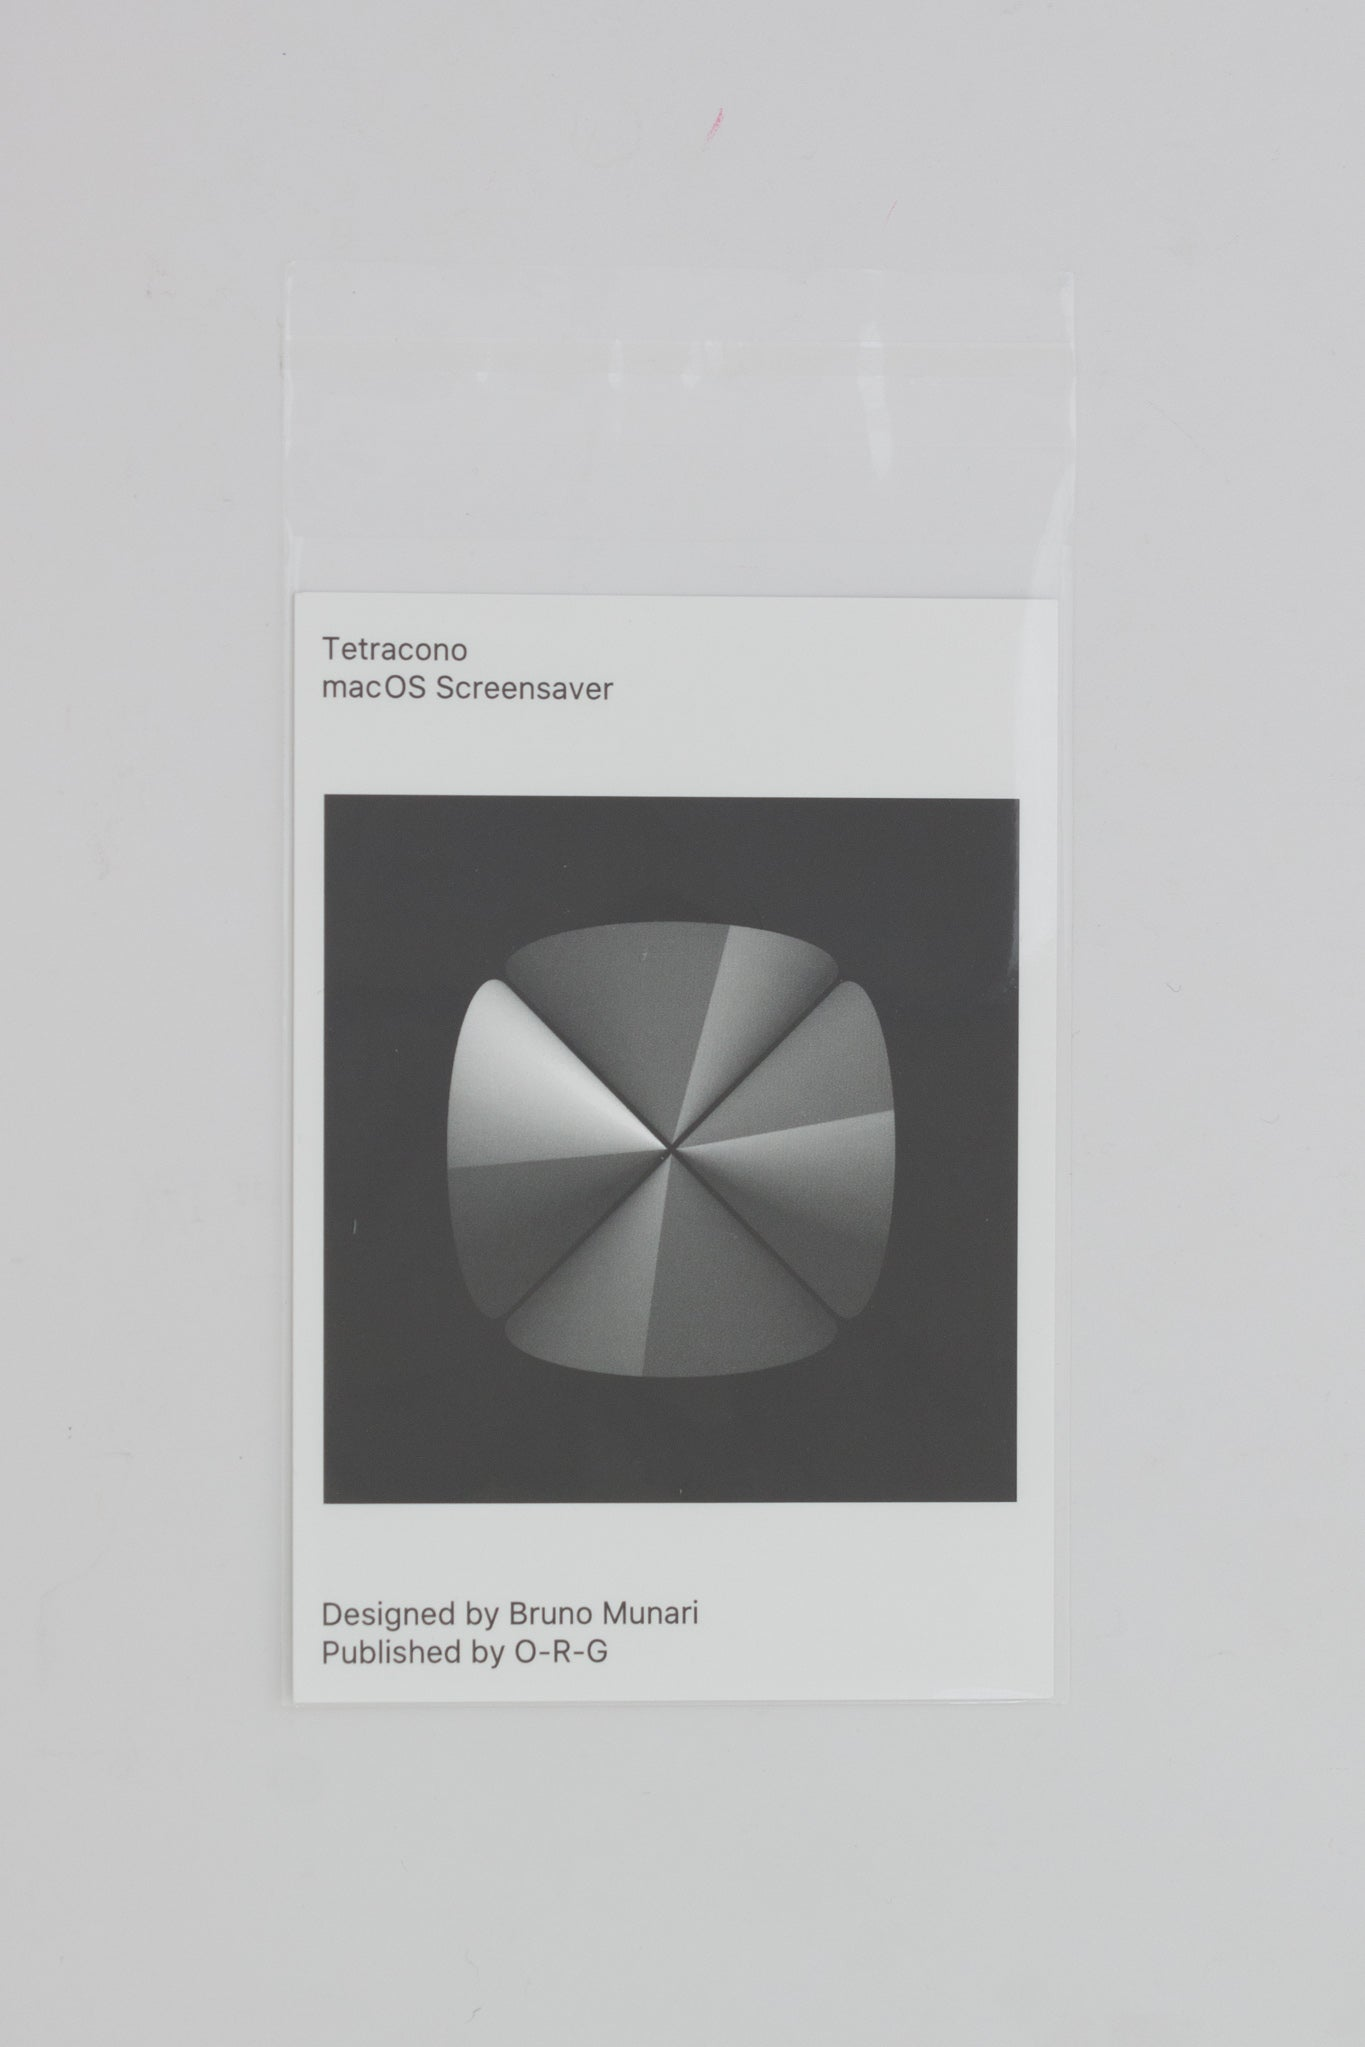 Tetracono macOS Screensaver - Bruno Munari